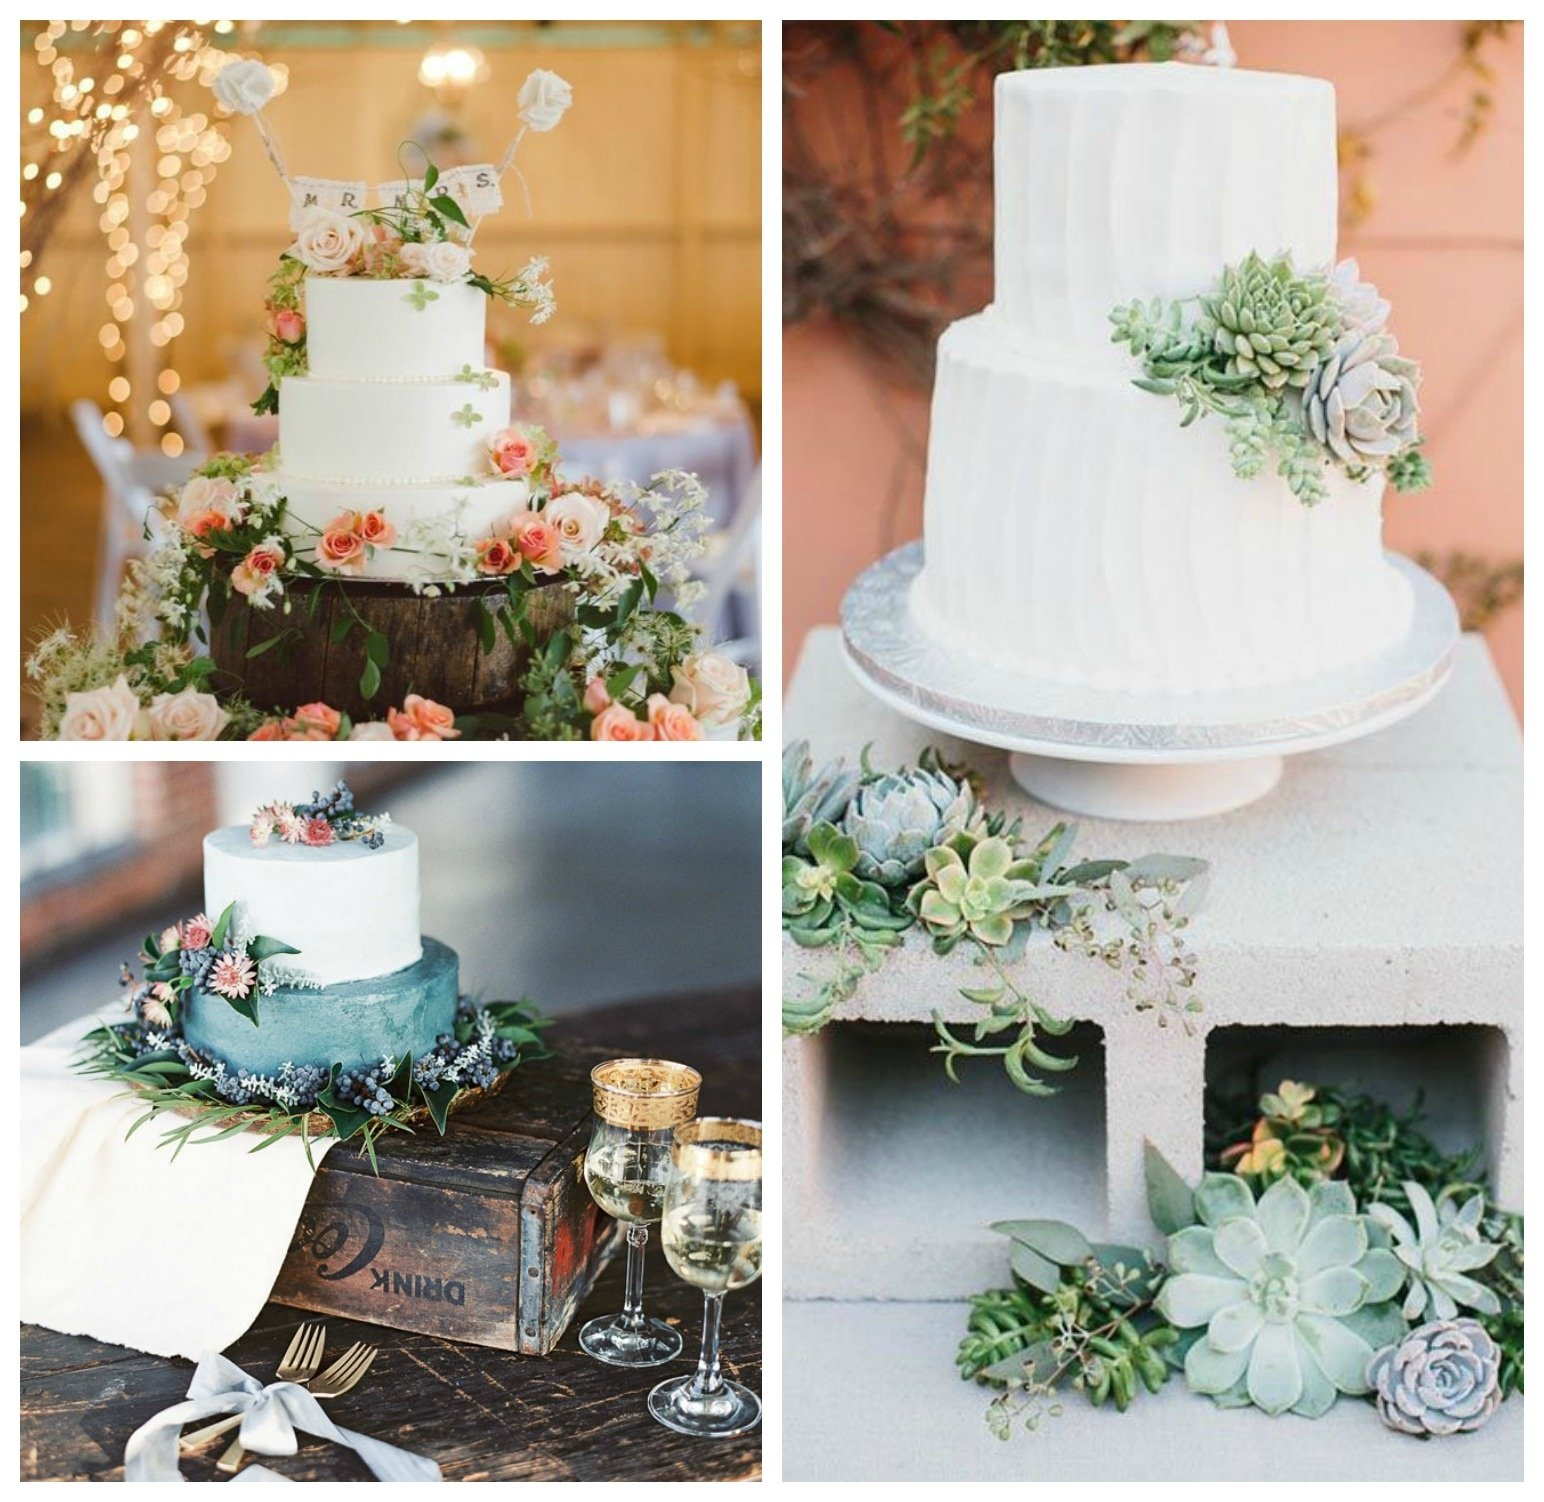 Wedding Cake Table.Spruce Up Your Cake Table Our Favorite Ideas For Wedding Cake Table